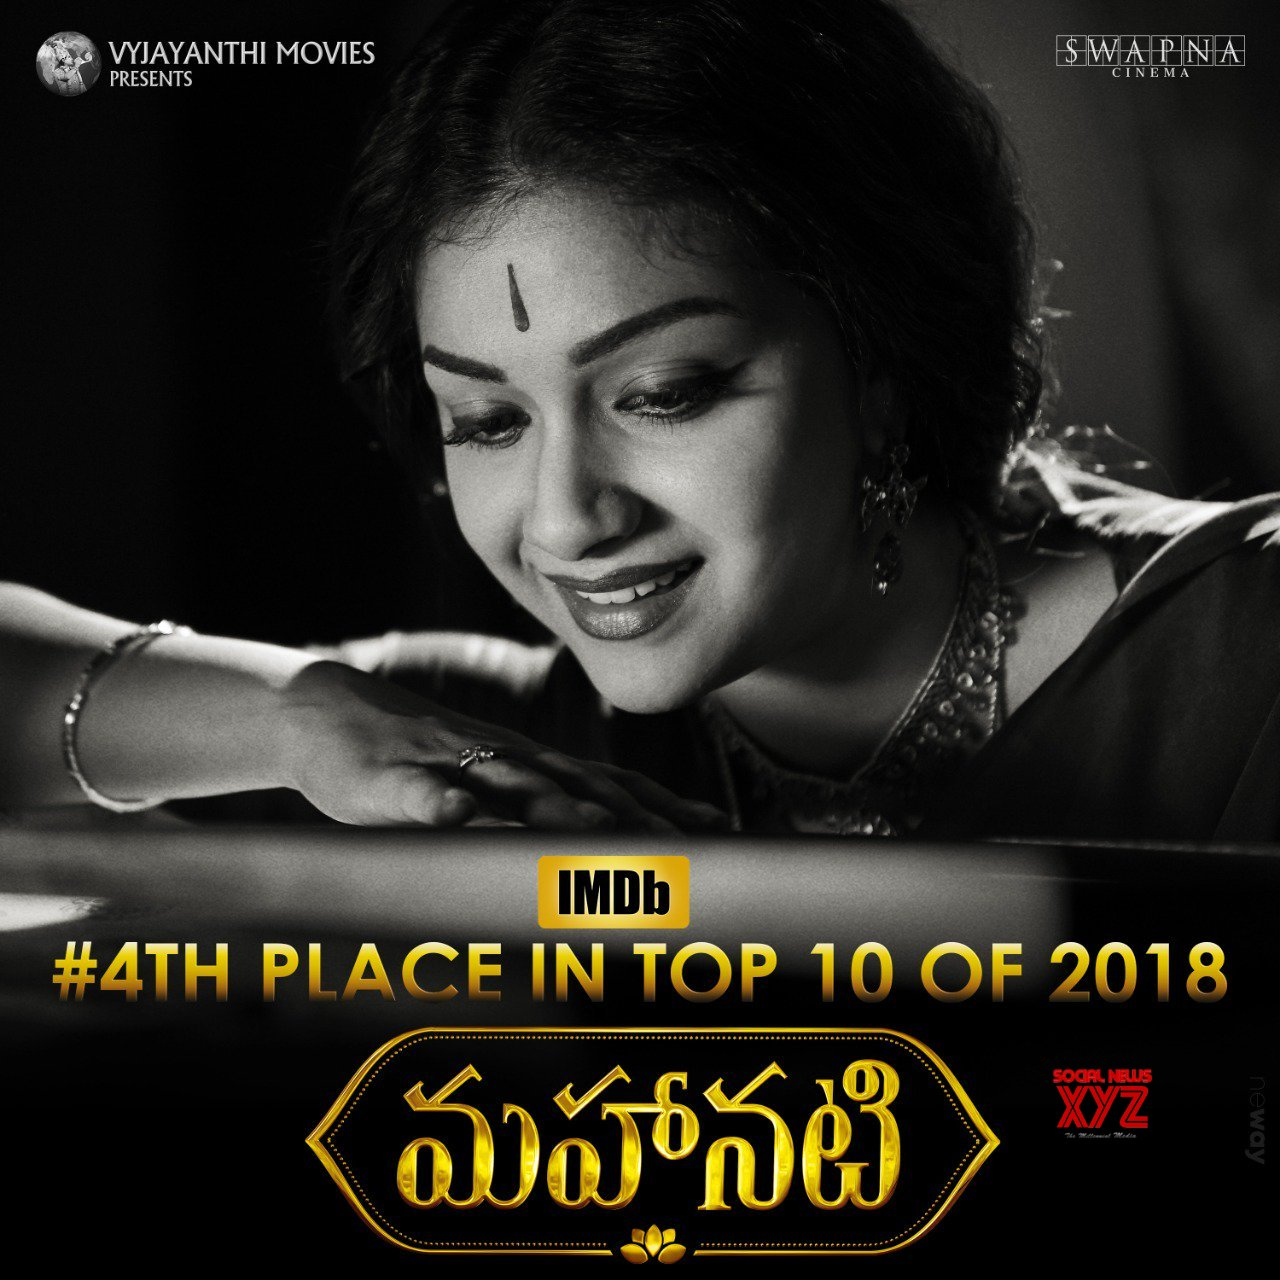 Mahanati Gets Placed At Fourth Position In IMDb's List Of Top 10 Indian Movies For The Year 2018